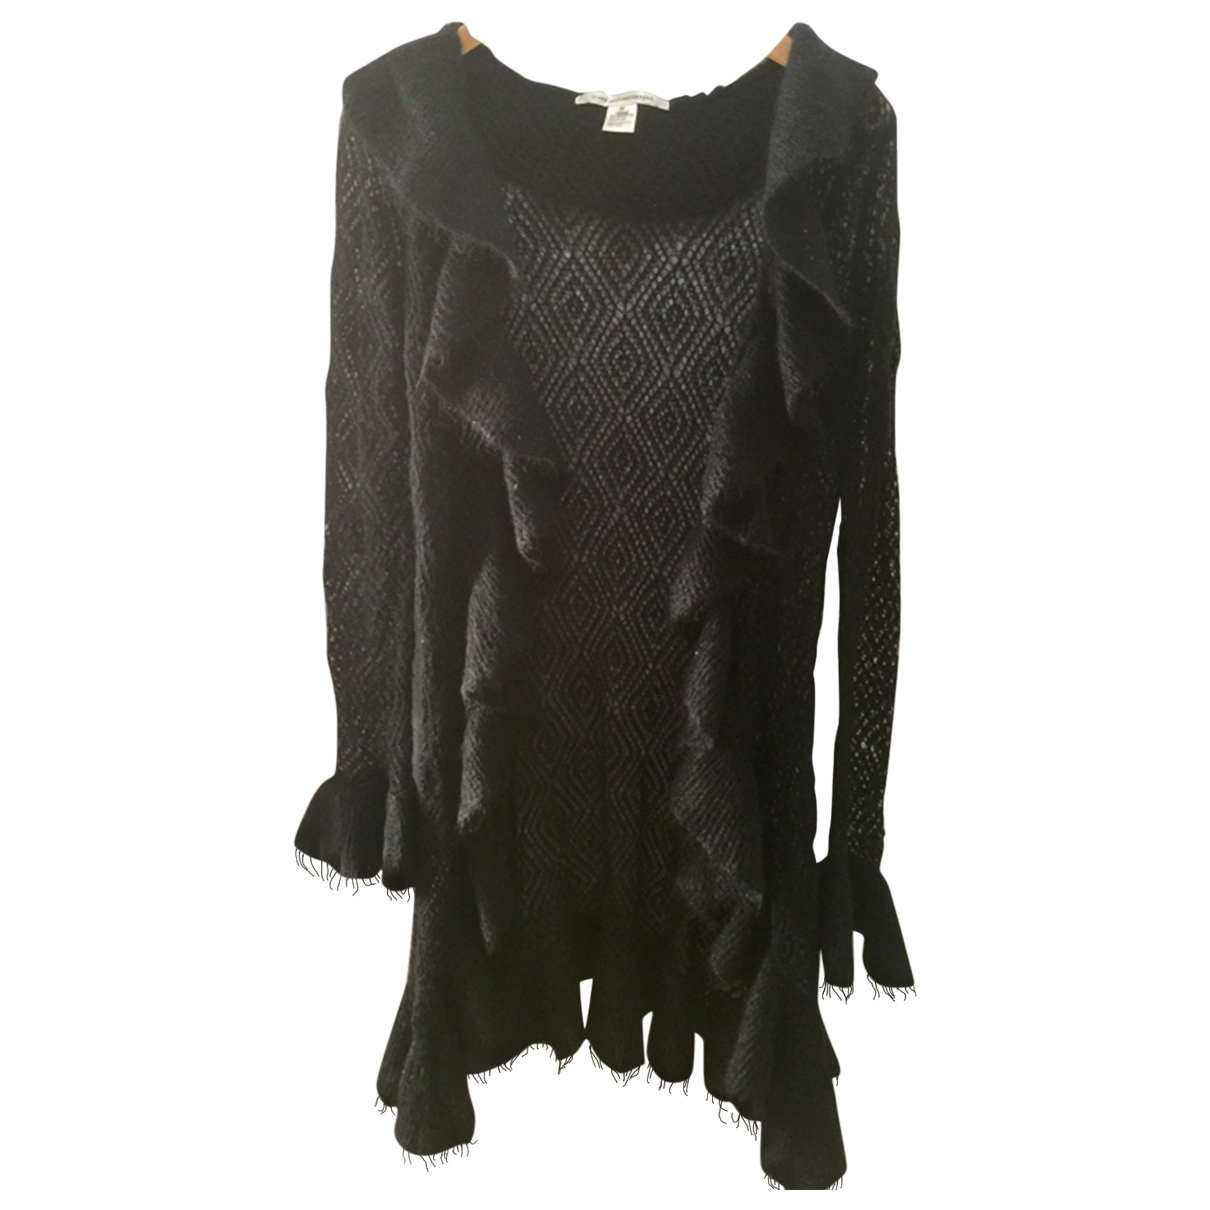 Diane Von Furstenberg \N Black Wool Knitwear for Women M International